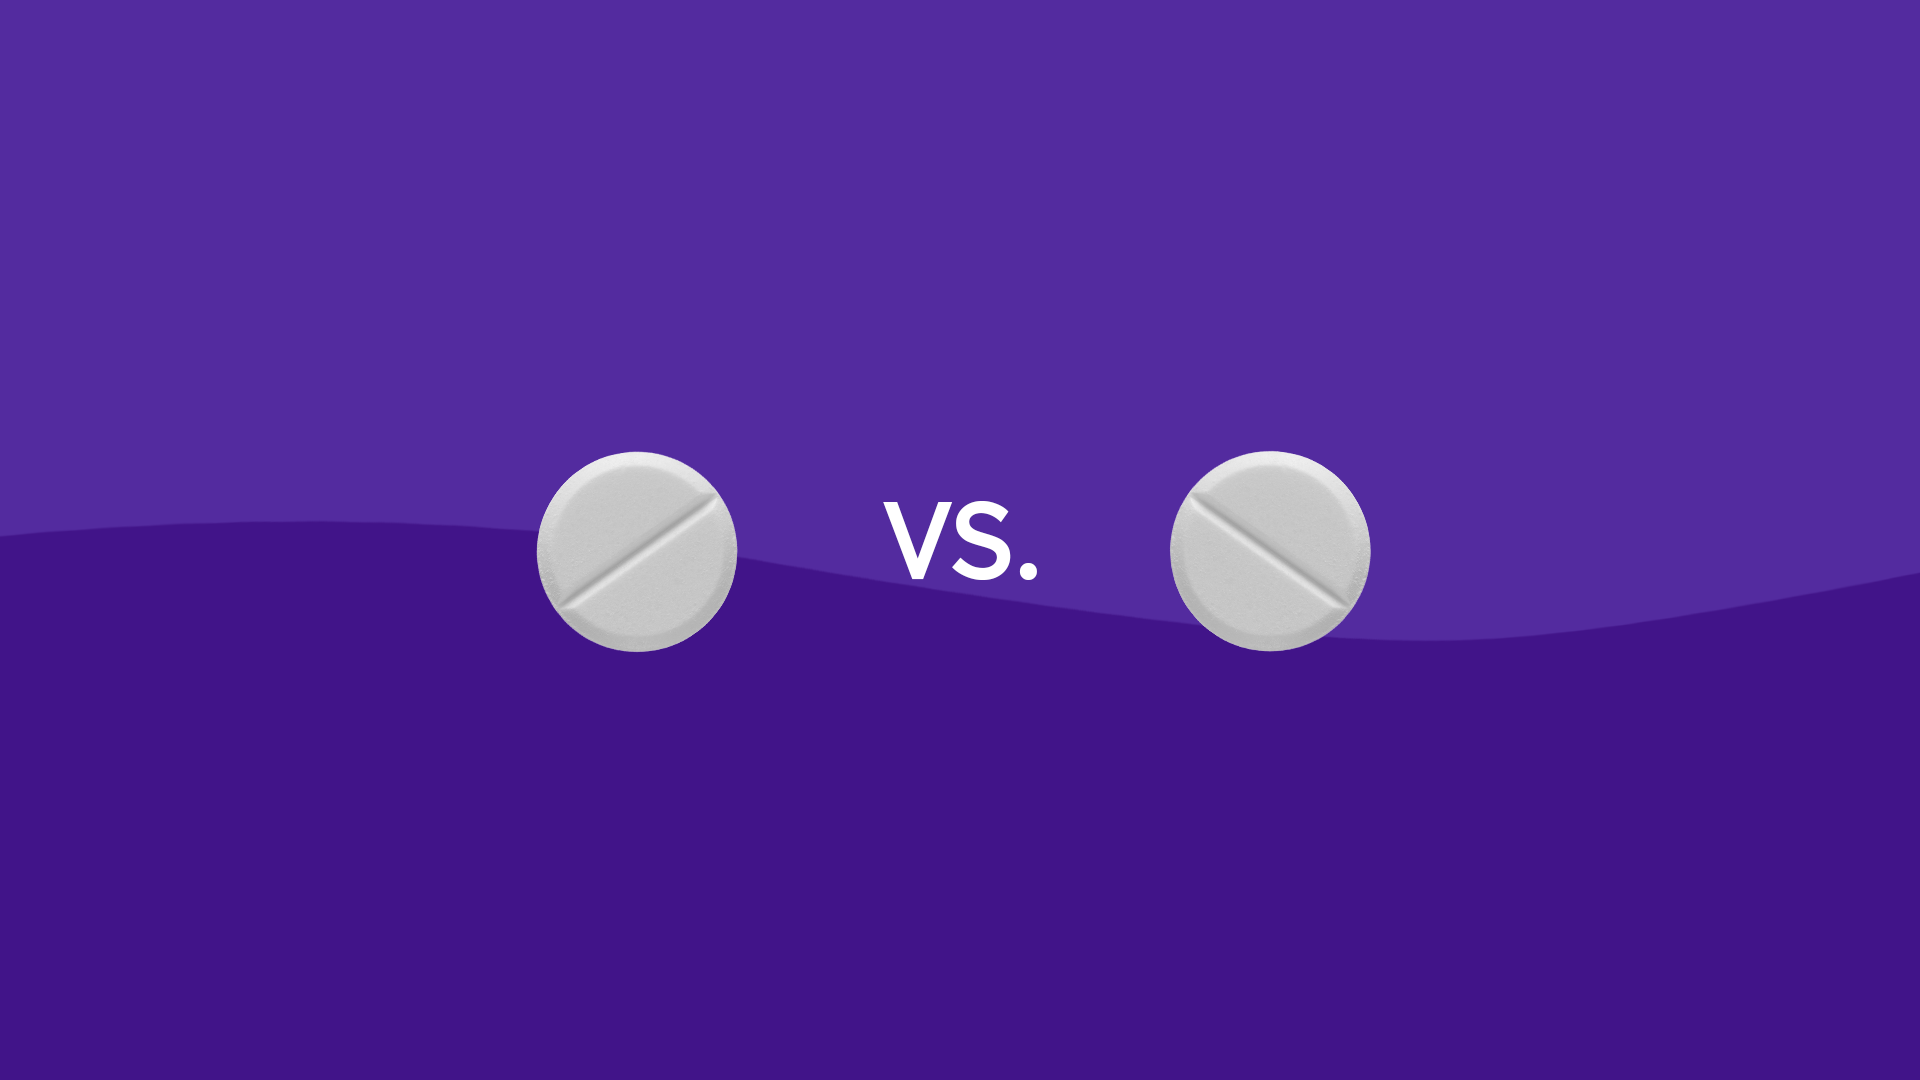 Desoxyn vs. Adderall: Differences, similarities, and which is better for you